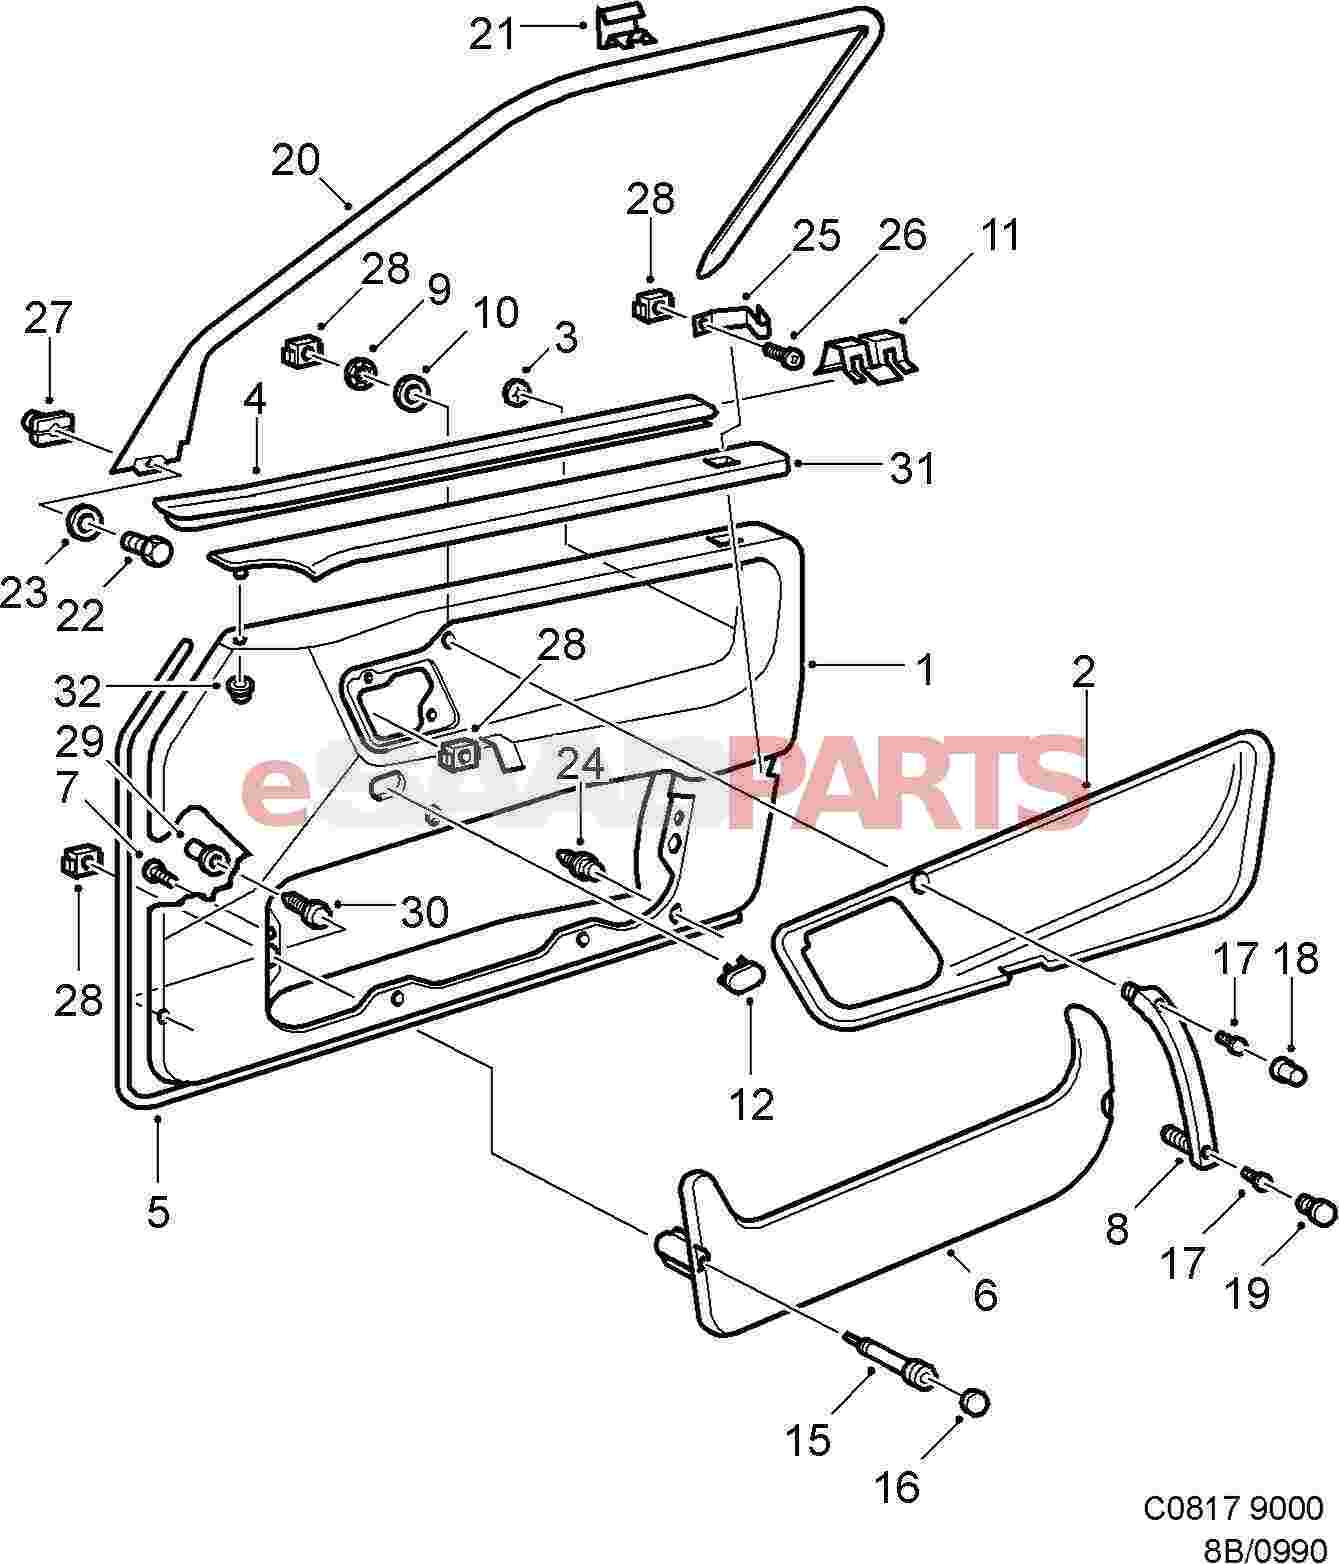 Front door drawing at getdrawings free for personal use front rh getdrawings car door lock schematic lincoln town car door parts